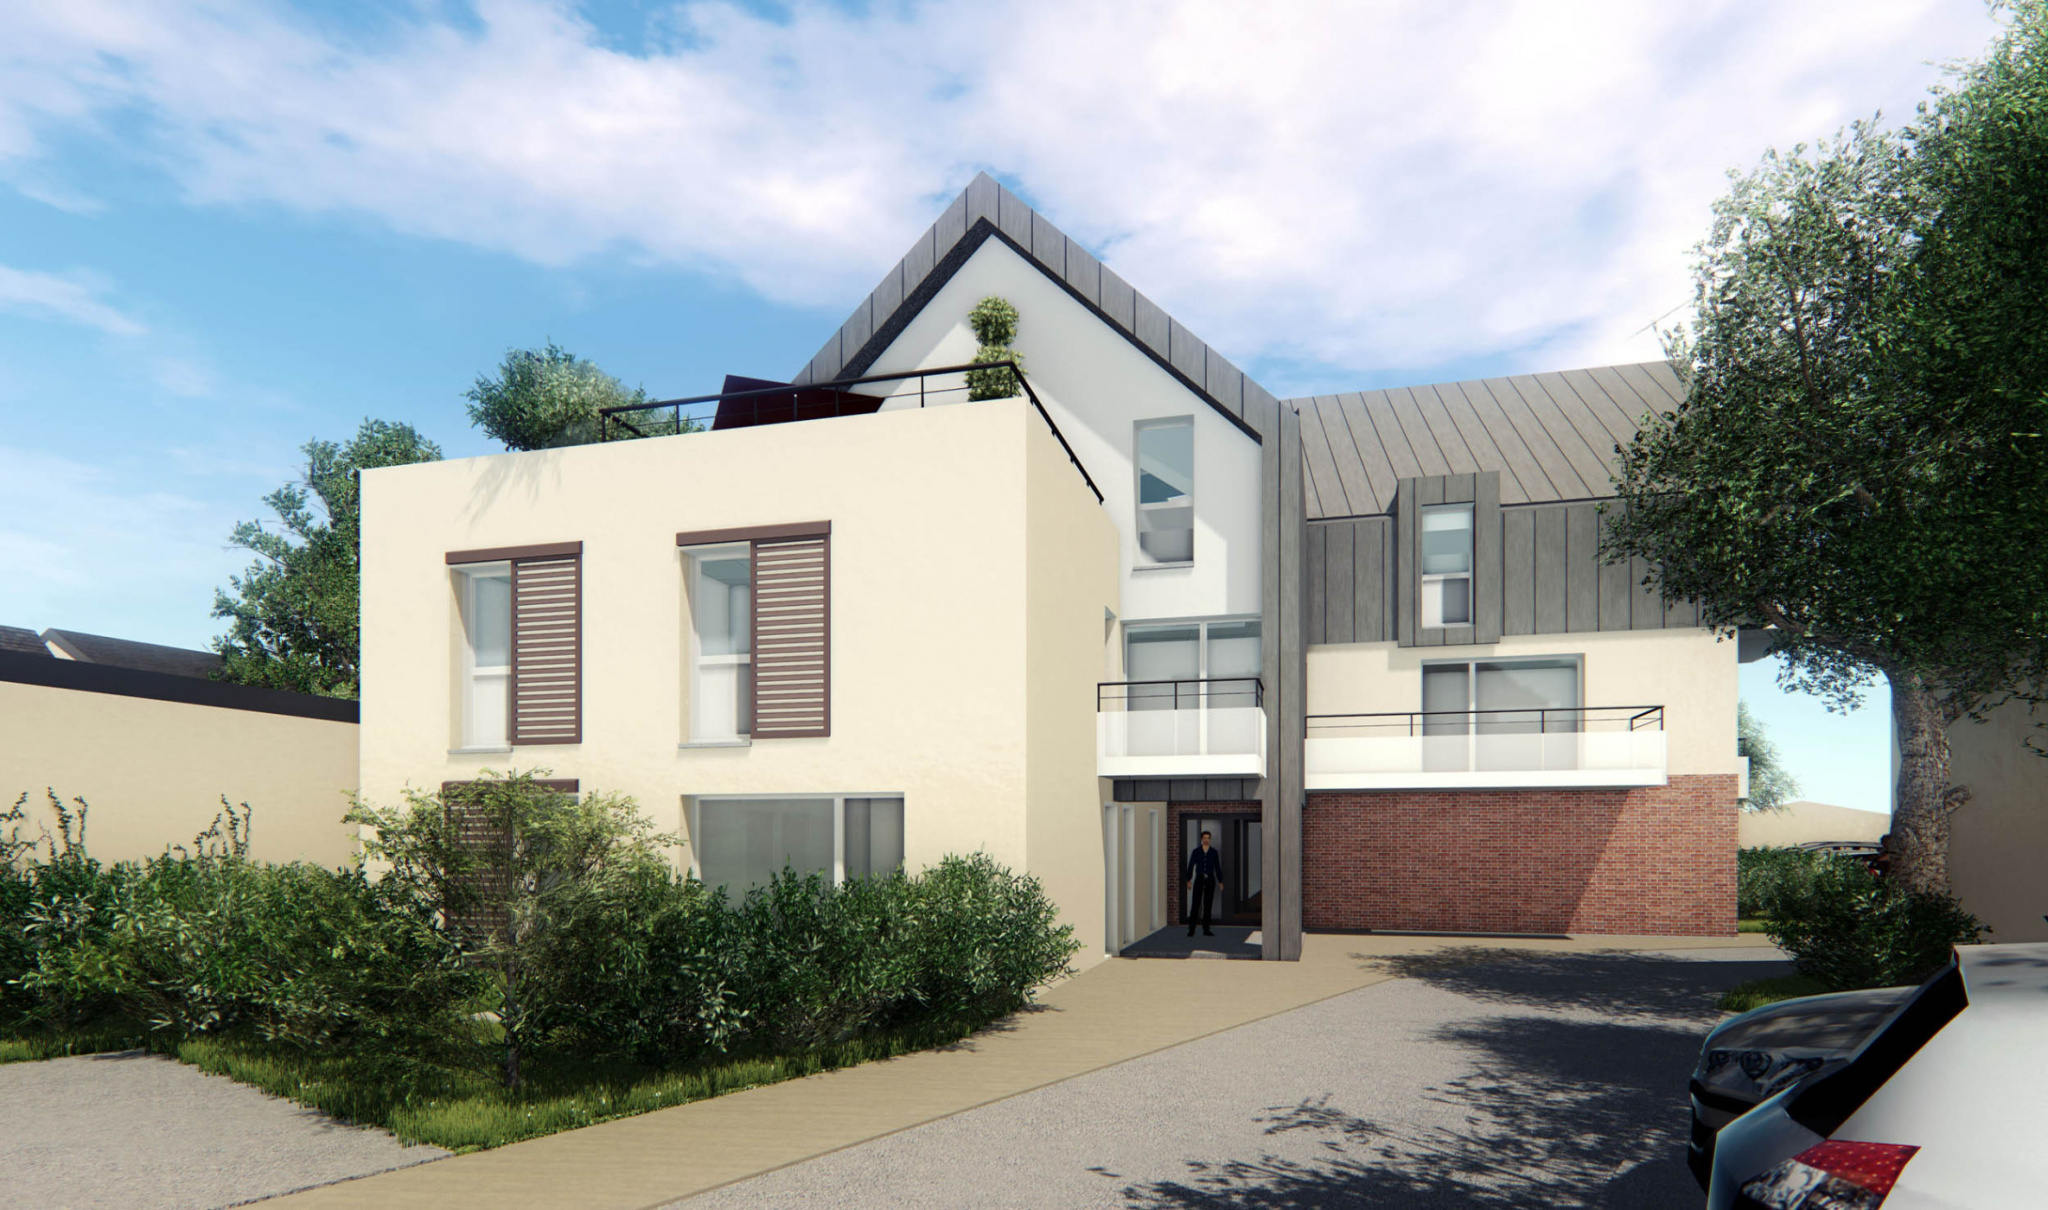 Annonce vente appartement orleans 45100 25 m 234 600 for Annonces immobilier neuf